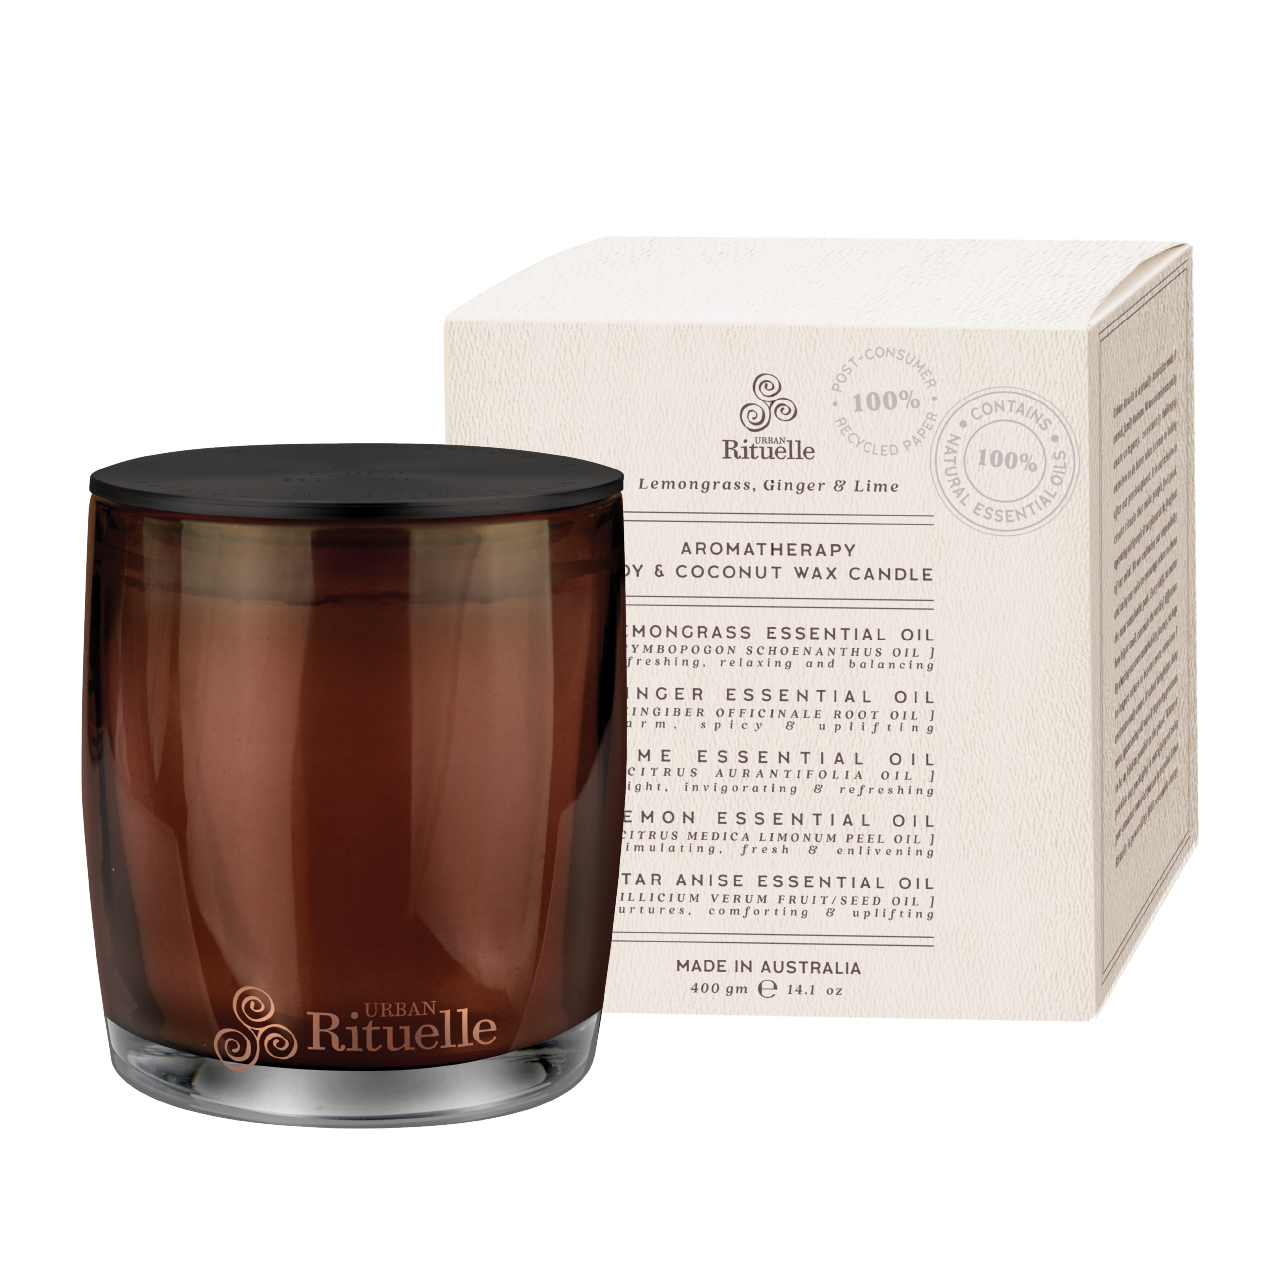 Natural Remedy - Aromatherapy Soy & Coconut Wax Candle